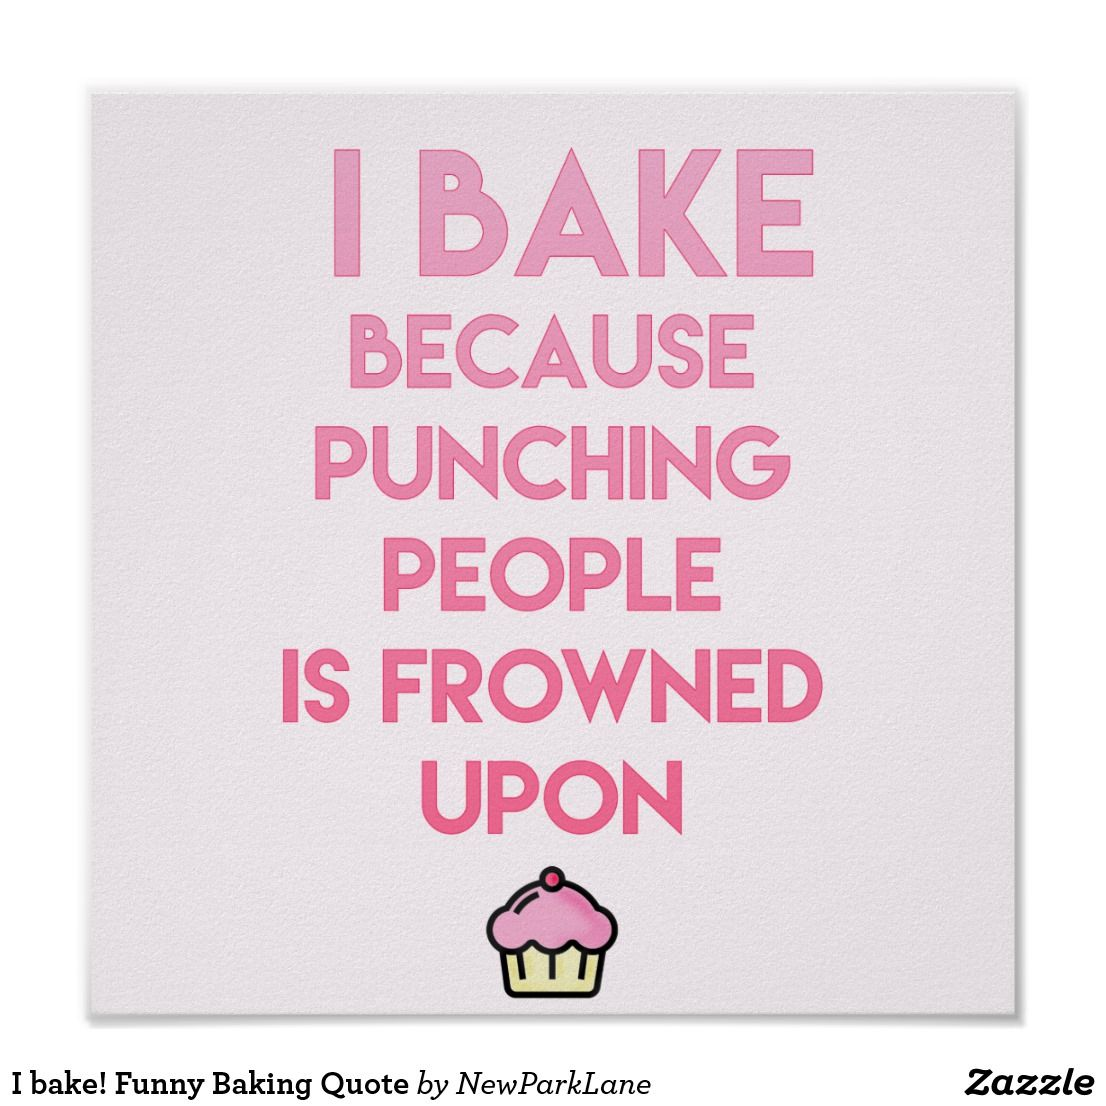 I Bake Funny Baking Quote Kitchen Poster Zazzle Com Funny Baking Quotes Baking Humor Baking Quotes